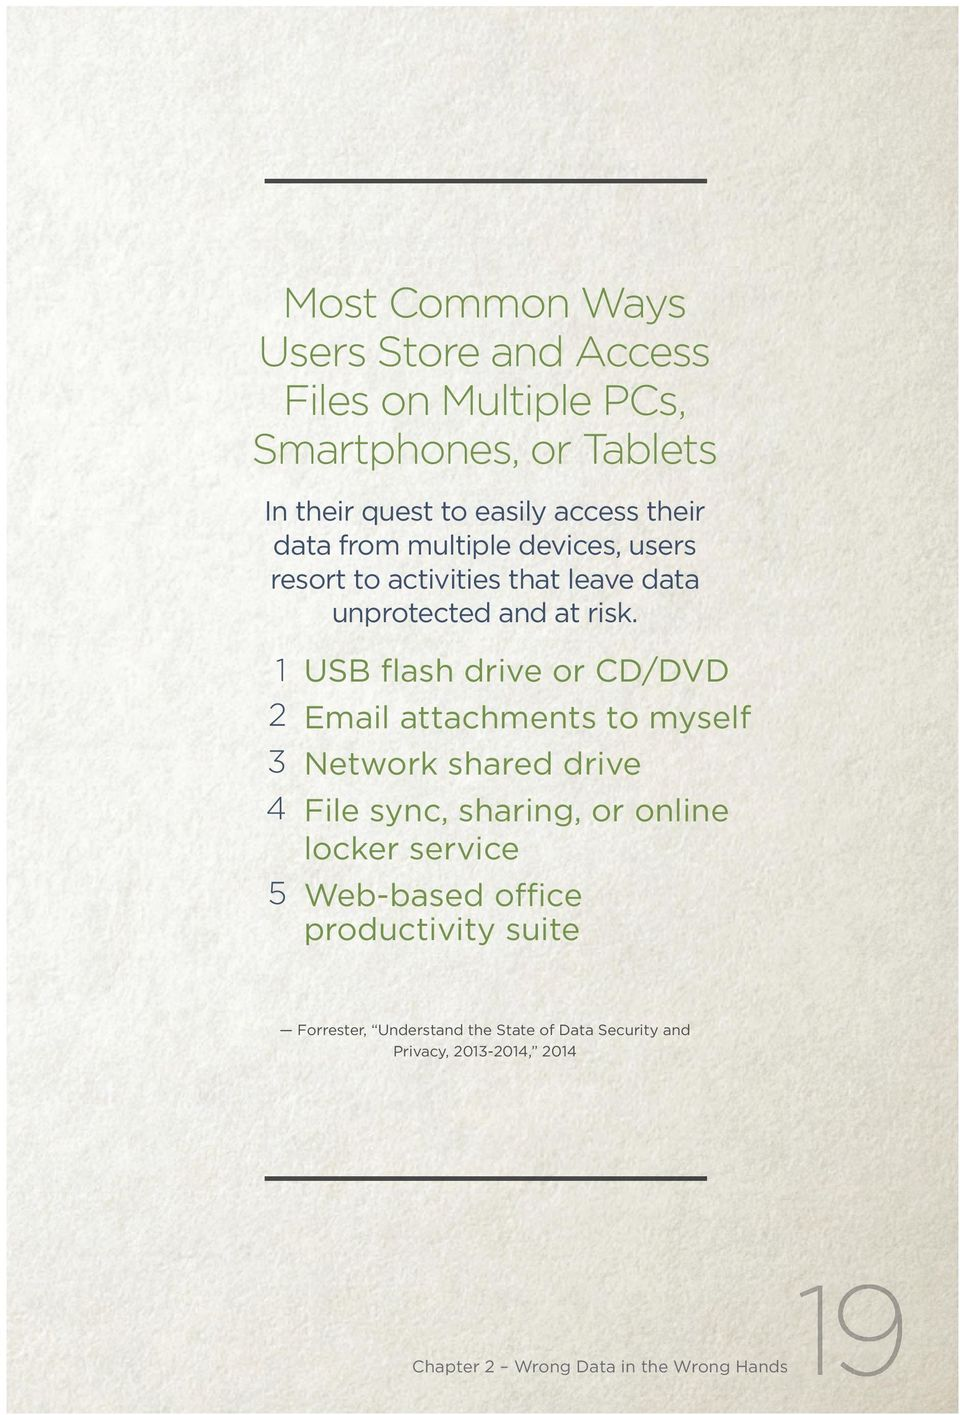 1 USB flash drive or CD/DVD 2 Email attachments to myself 3 Network shared drive 4 File sync, sharing, or online locker